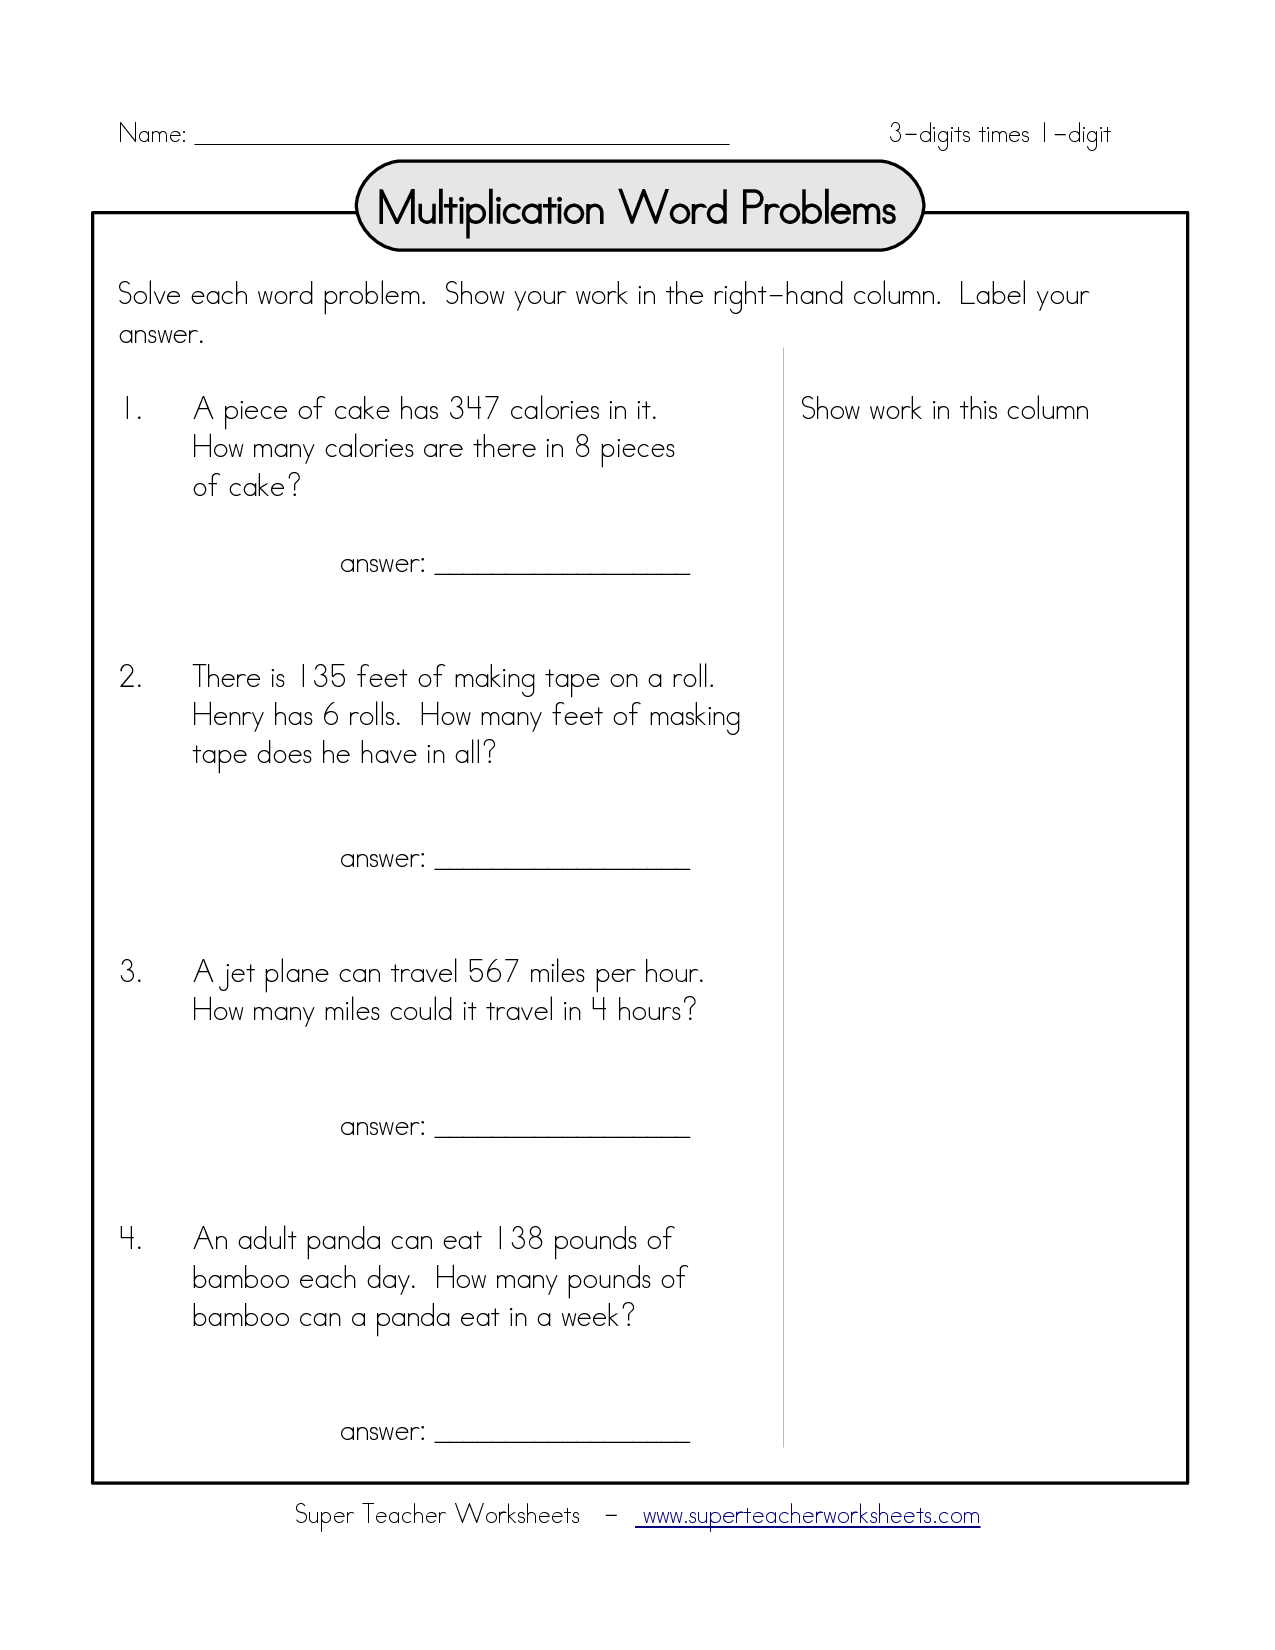 Math Worksheet Top Multiplication Word Problems Grade 4 Gallery Images ...